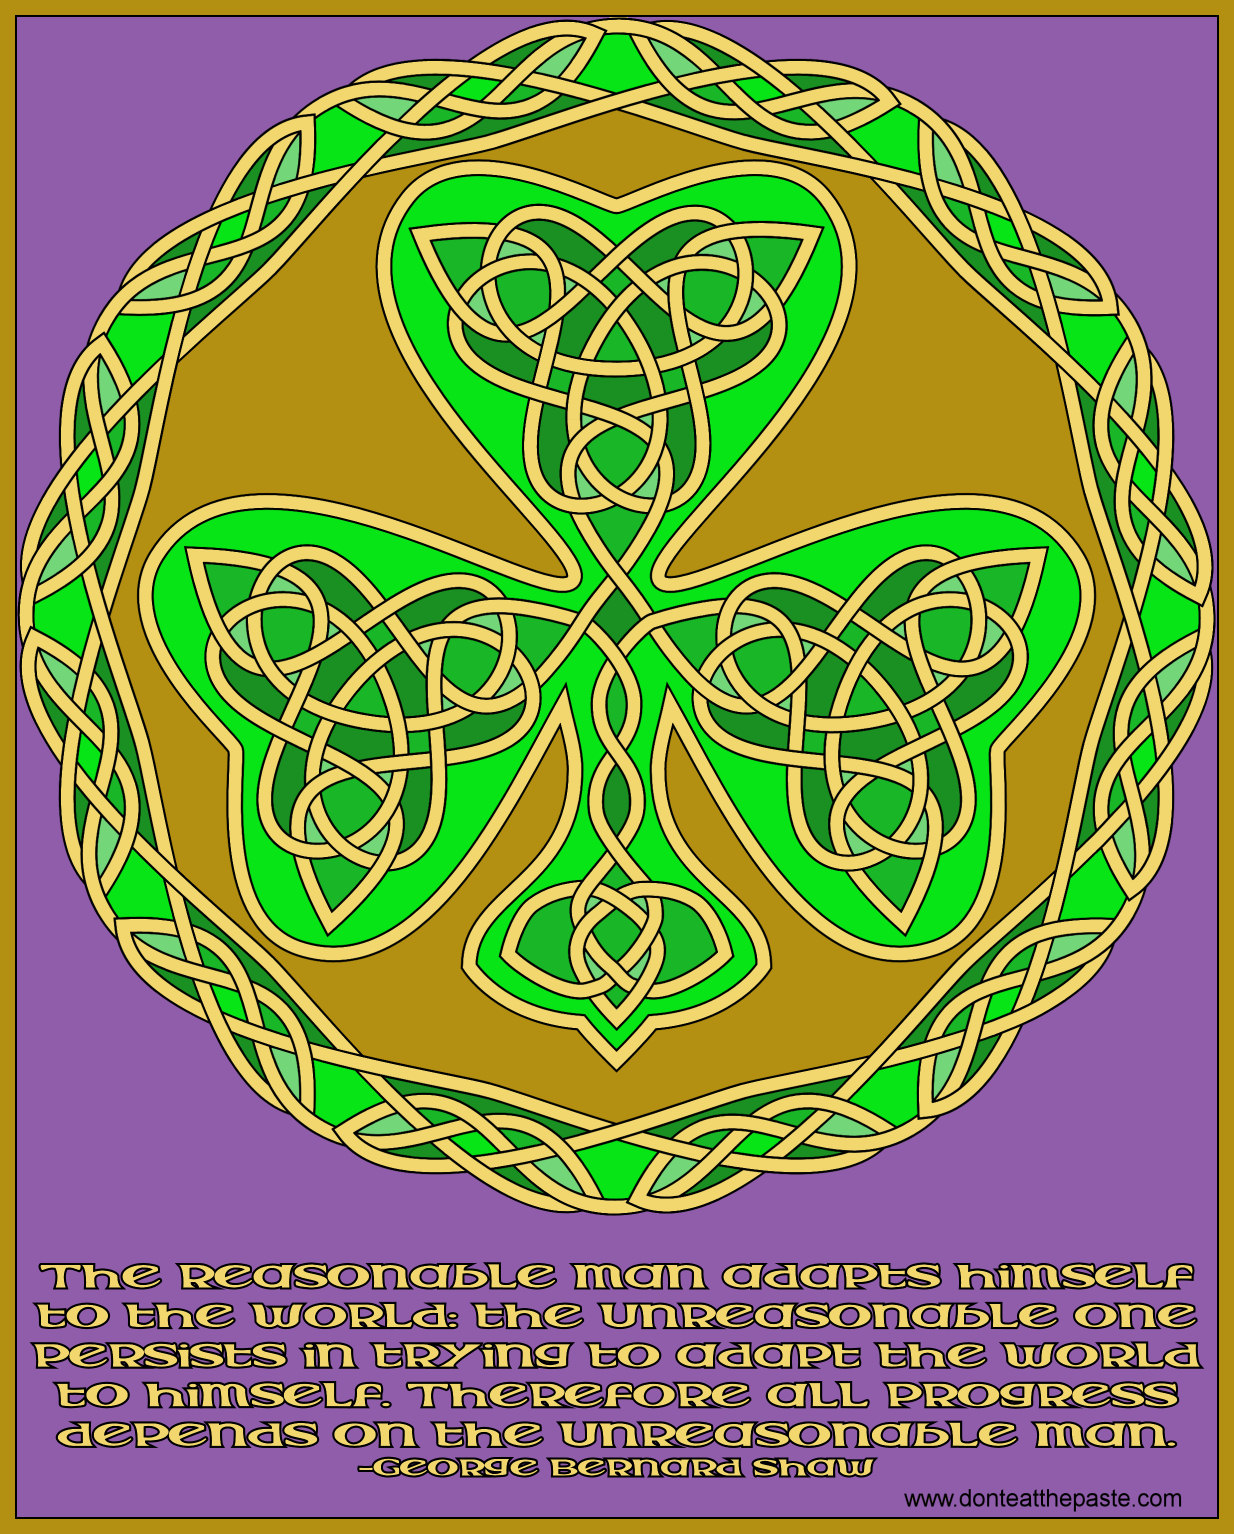 All progress depends on the unreasonable man- shamrock Celtic knotwork